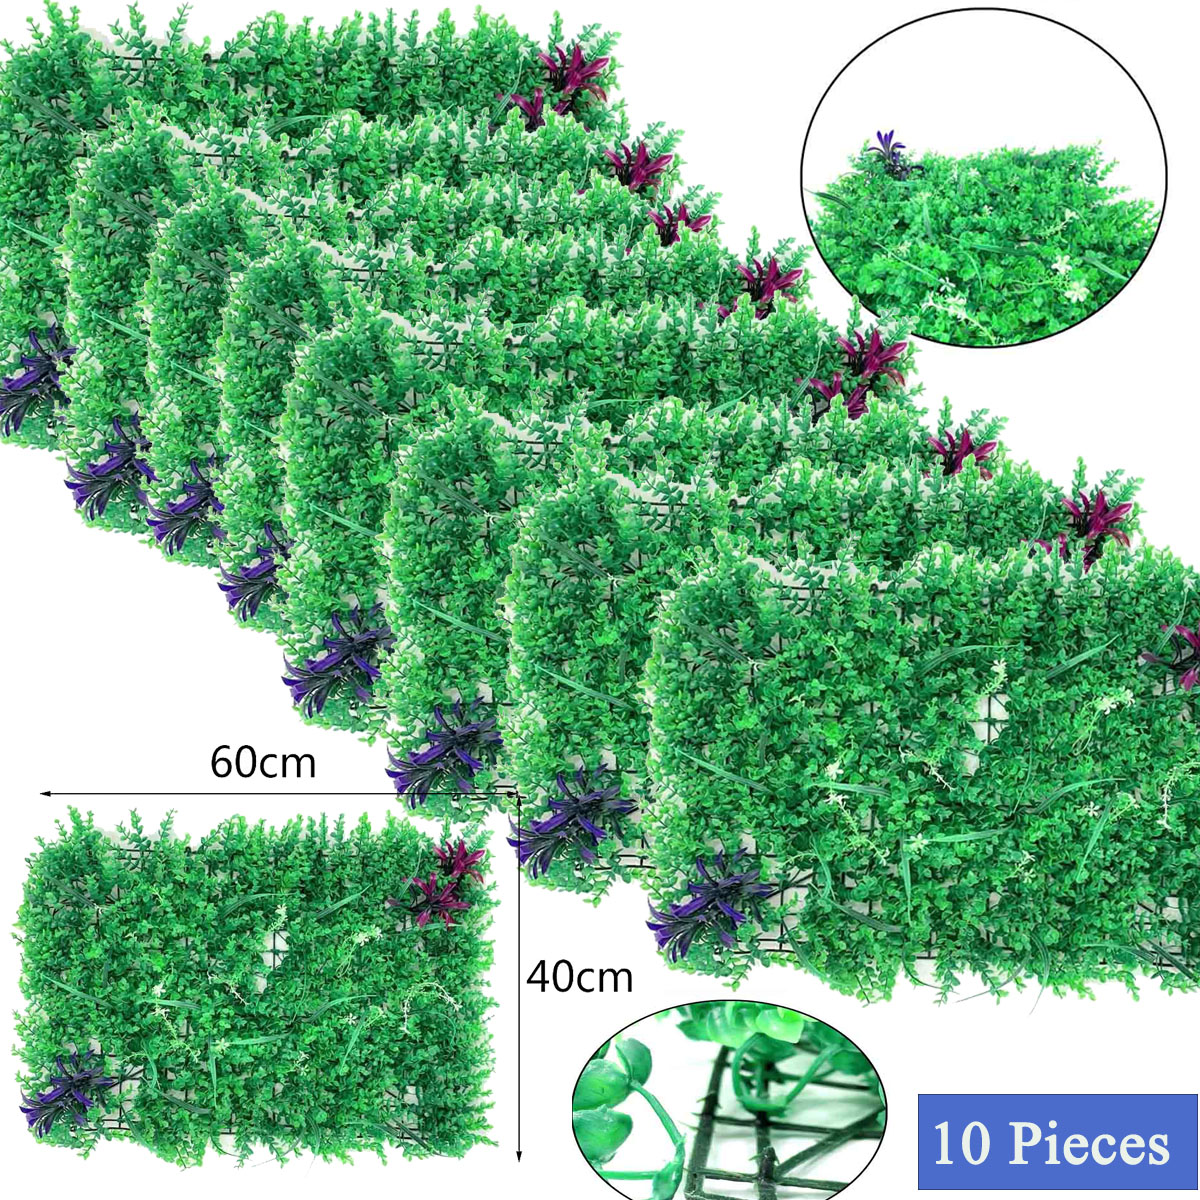 10pcs Artificial Boxwood Panels Topiary Hedge Plant Privacy Hedge Screen Ebay